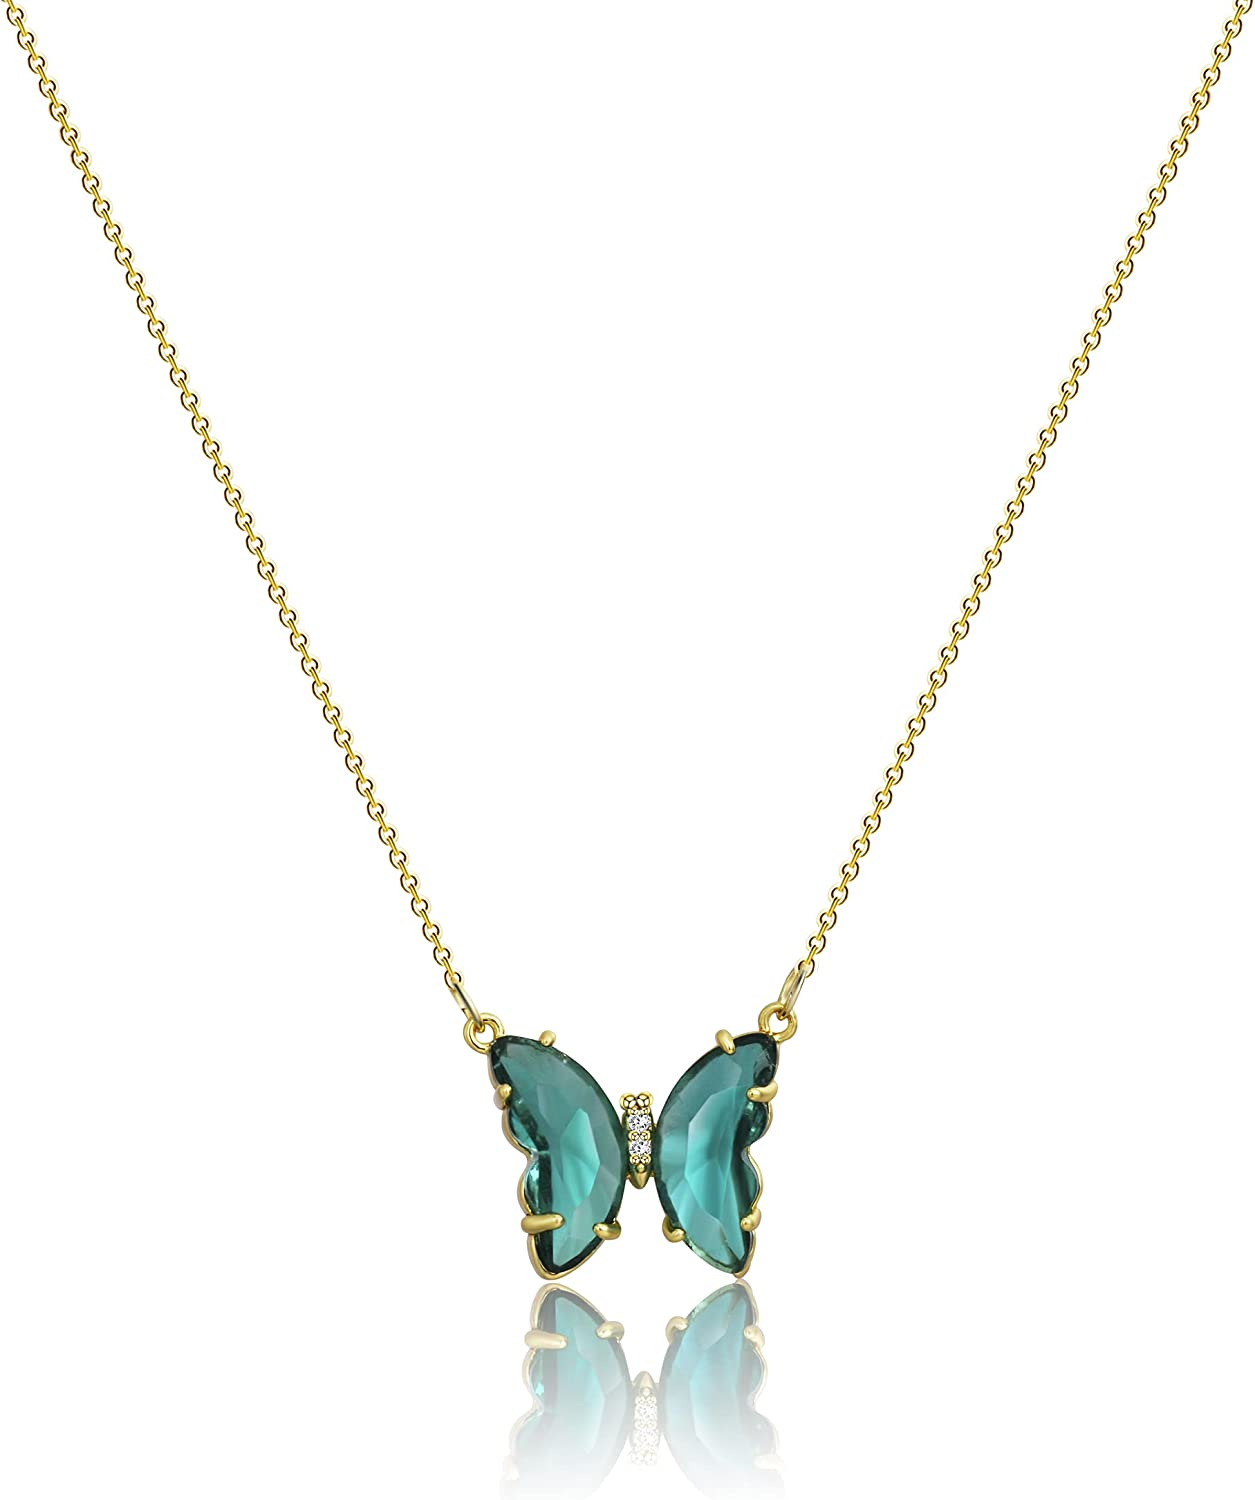 Carovo Dainty Gold Moon Star Pendant Necklace 18K Gold Filled Cute Delicate Butterfly Heart Evil Eye Italian Horn Cornicello Protection Necklaces Minimalist Charm Jewelry Gift for Women